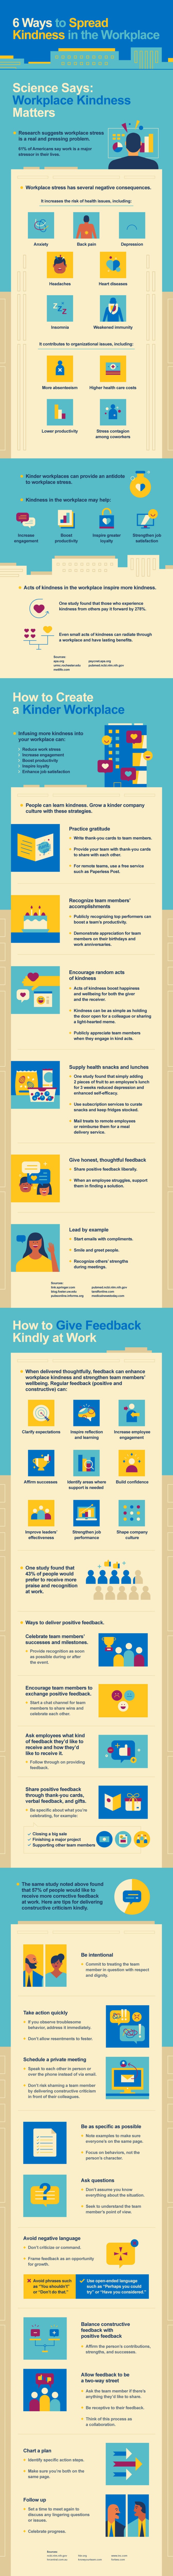 6 ways to spread kindness in the workplace